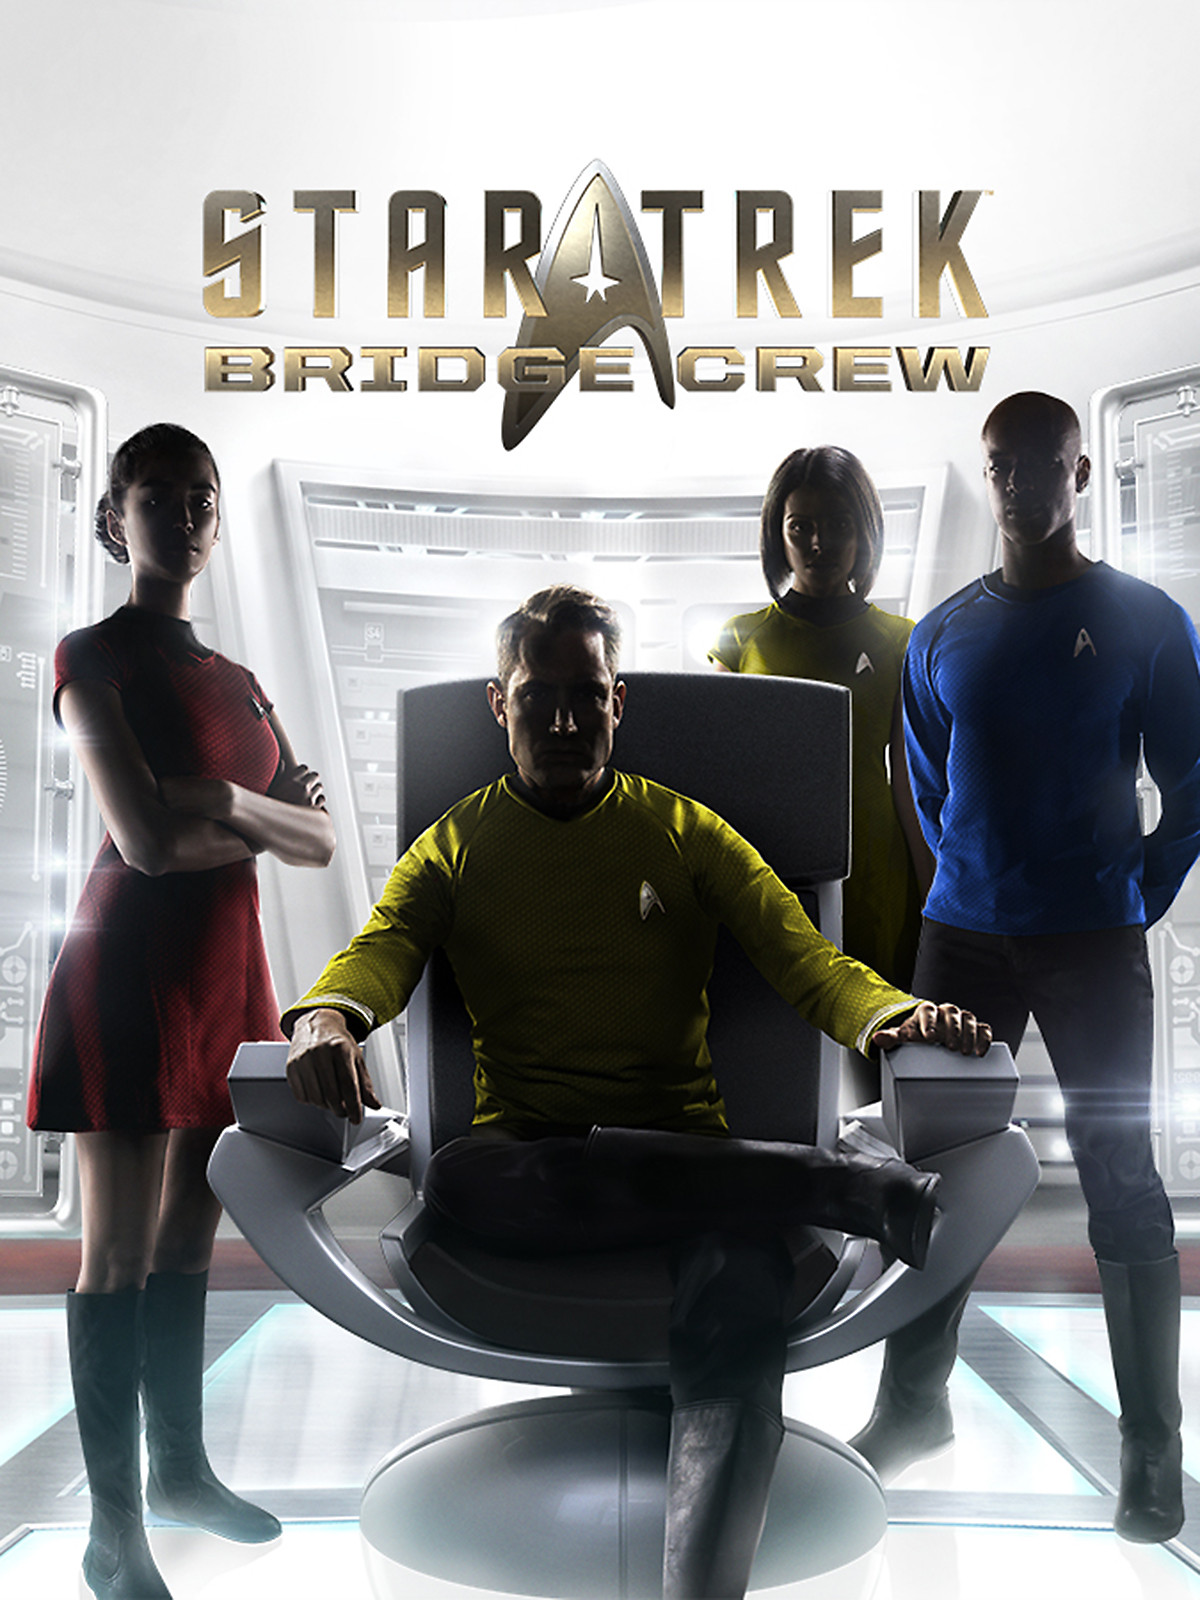 Star Trek Bridge Crew: juego multijugador para PS VR